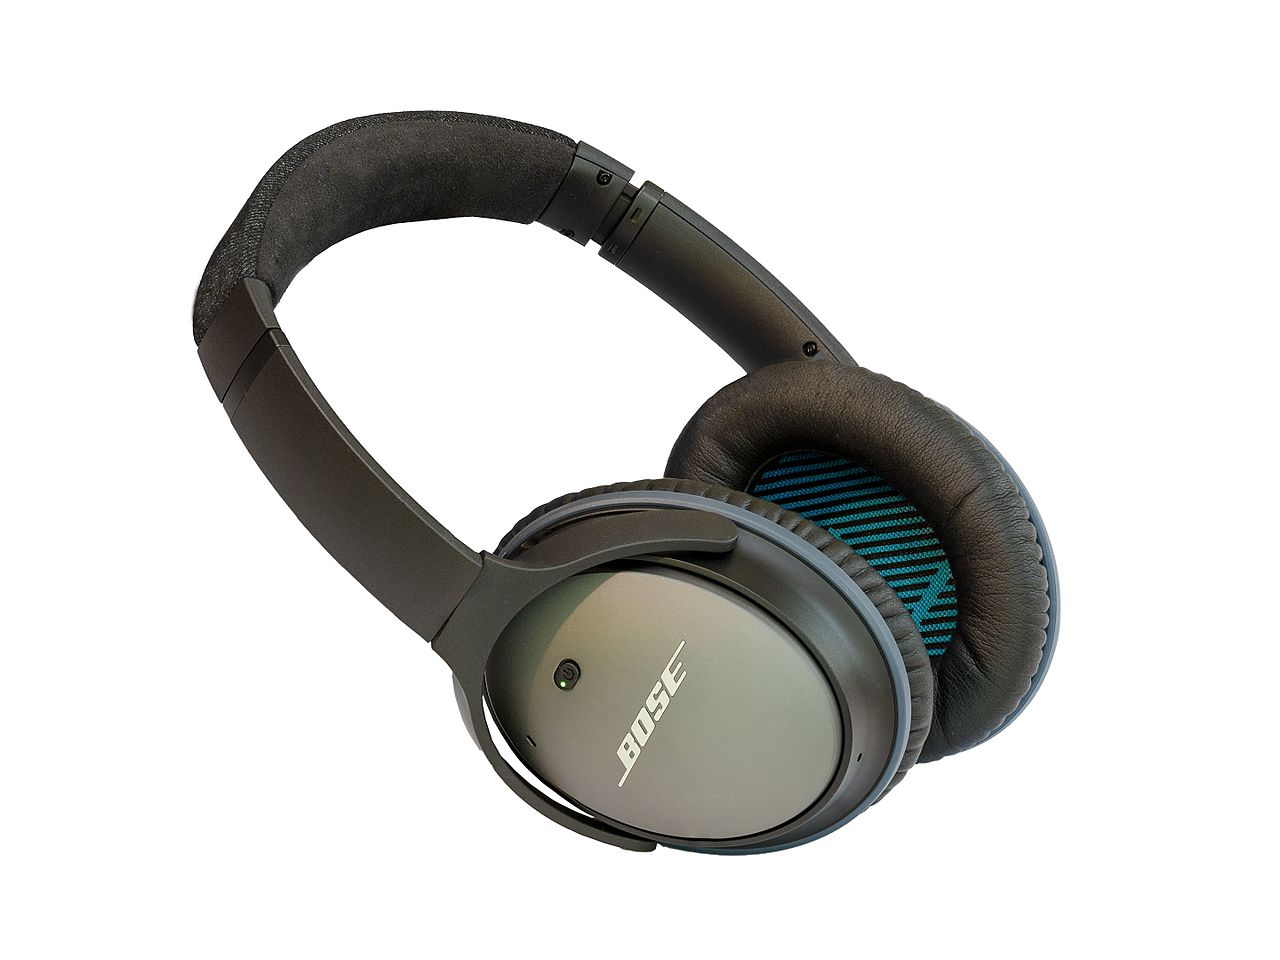 Bose Noise Cancelling File Bose Quietcomfort 25 Acoustic Noise Cancelling